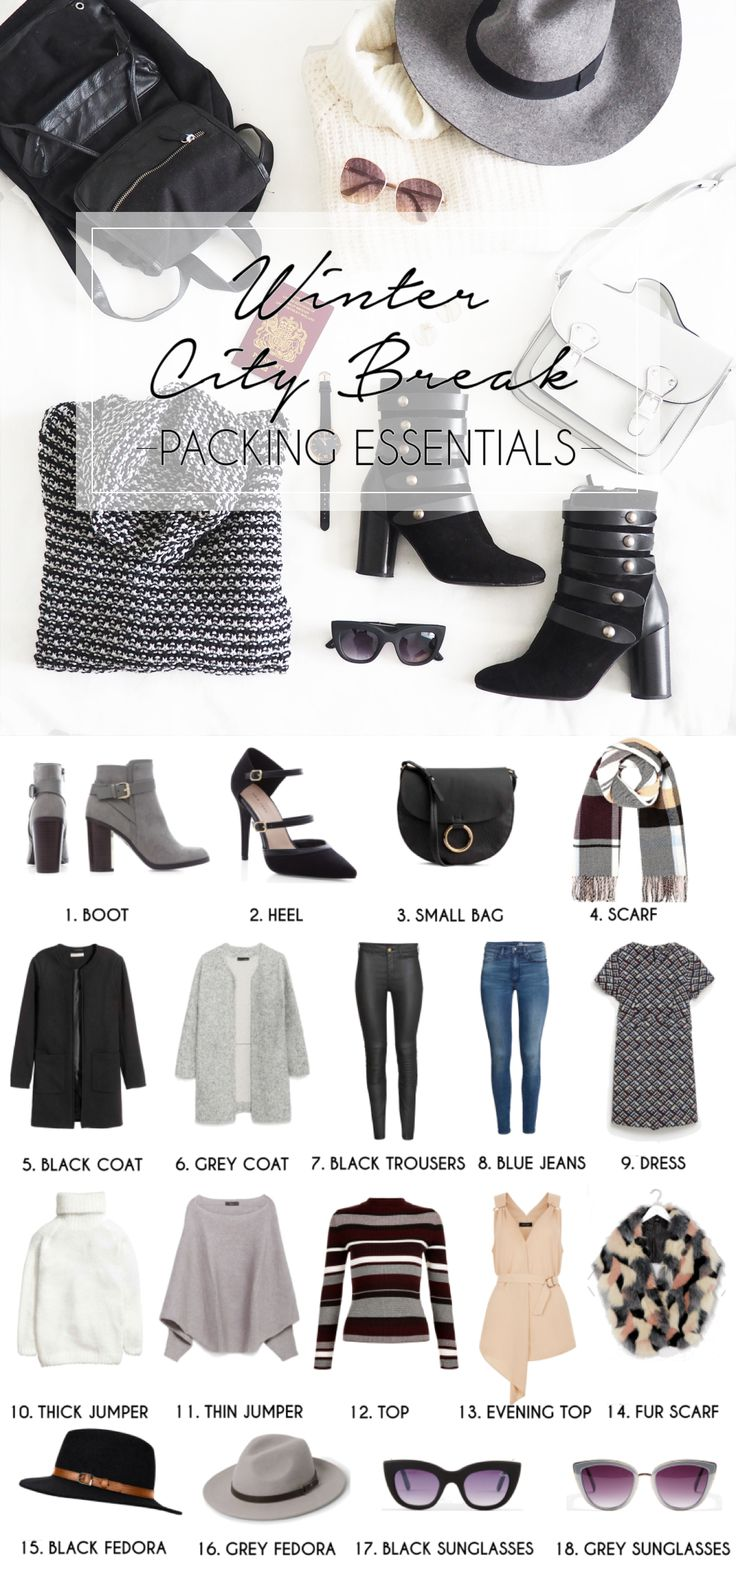 Winter City Break Packing Essentials. Fashion blogger post on how to pack for a winter getaway with just hand luggage carry on baggage. Fashion blogger essentials winter wardrobe necessities for dressing styling in Milan Italy or any city break. Capsule interchangeable wardrobe. Full Post on ClothesandStuff.co.uk